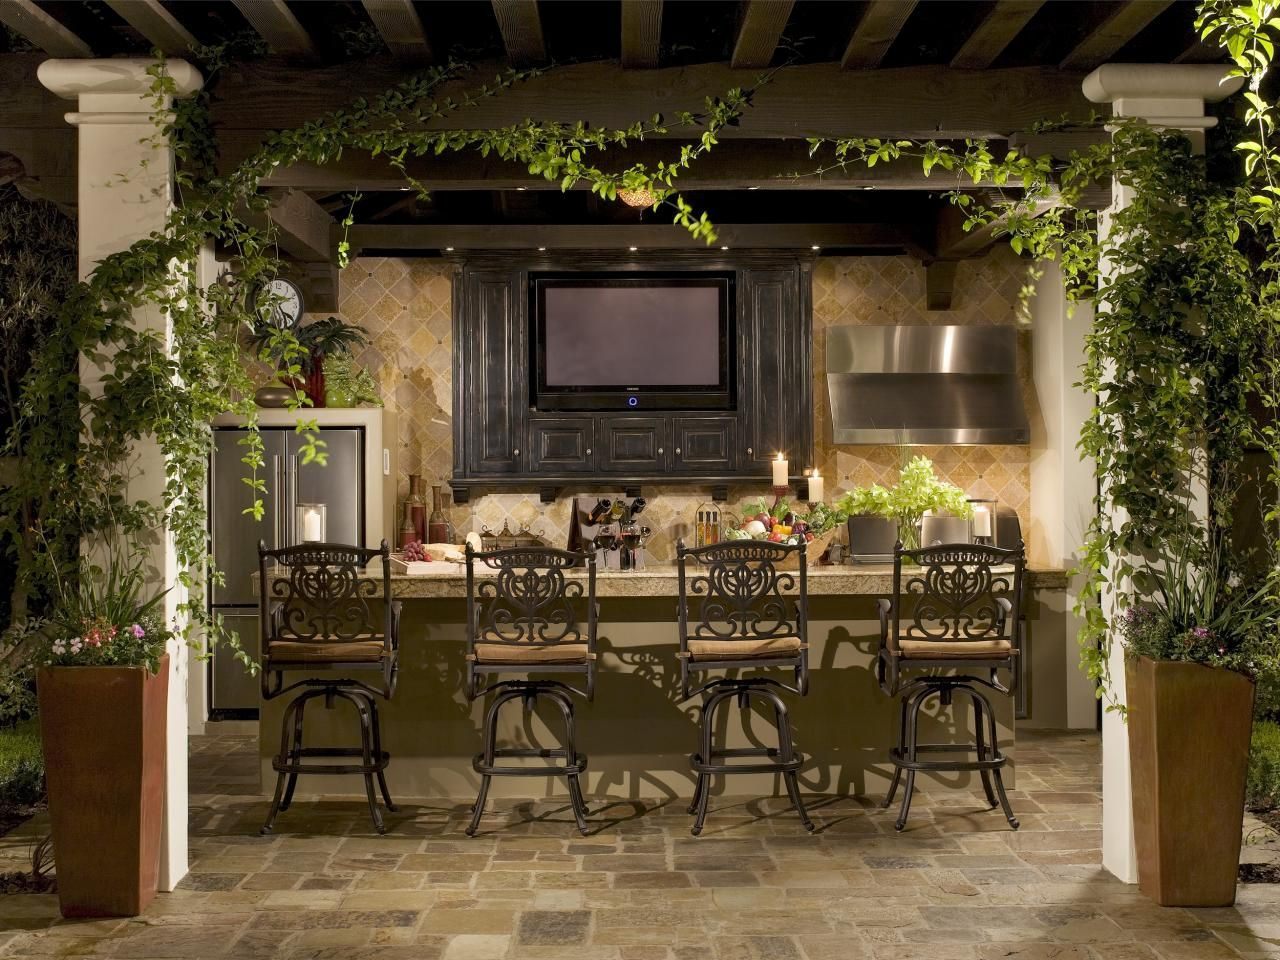 Outdoor Patio Rooms stylish and functional outdoor dining rooms outdoor. 18 amazing